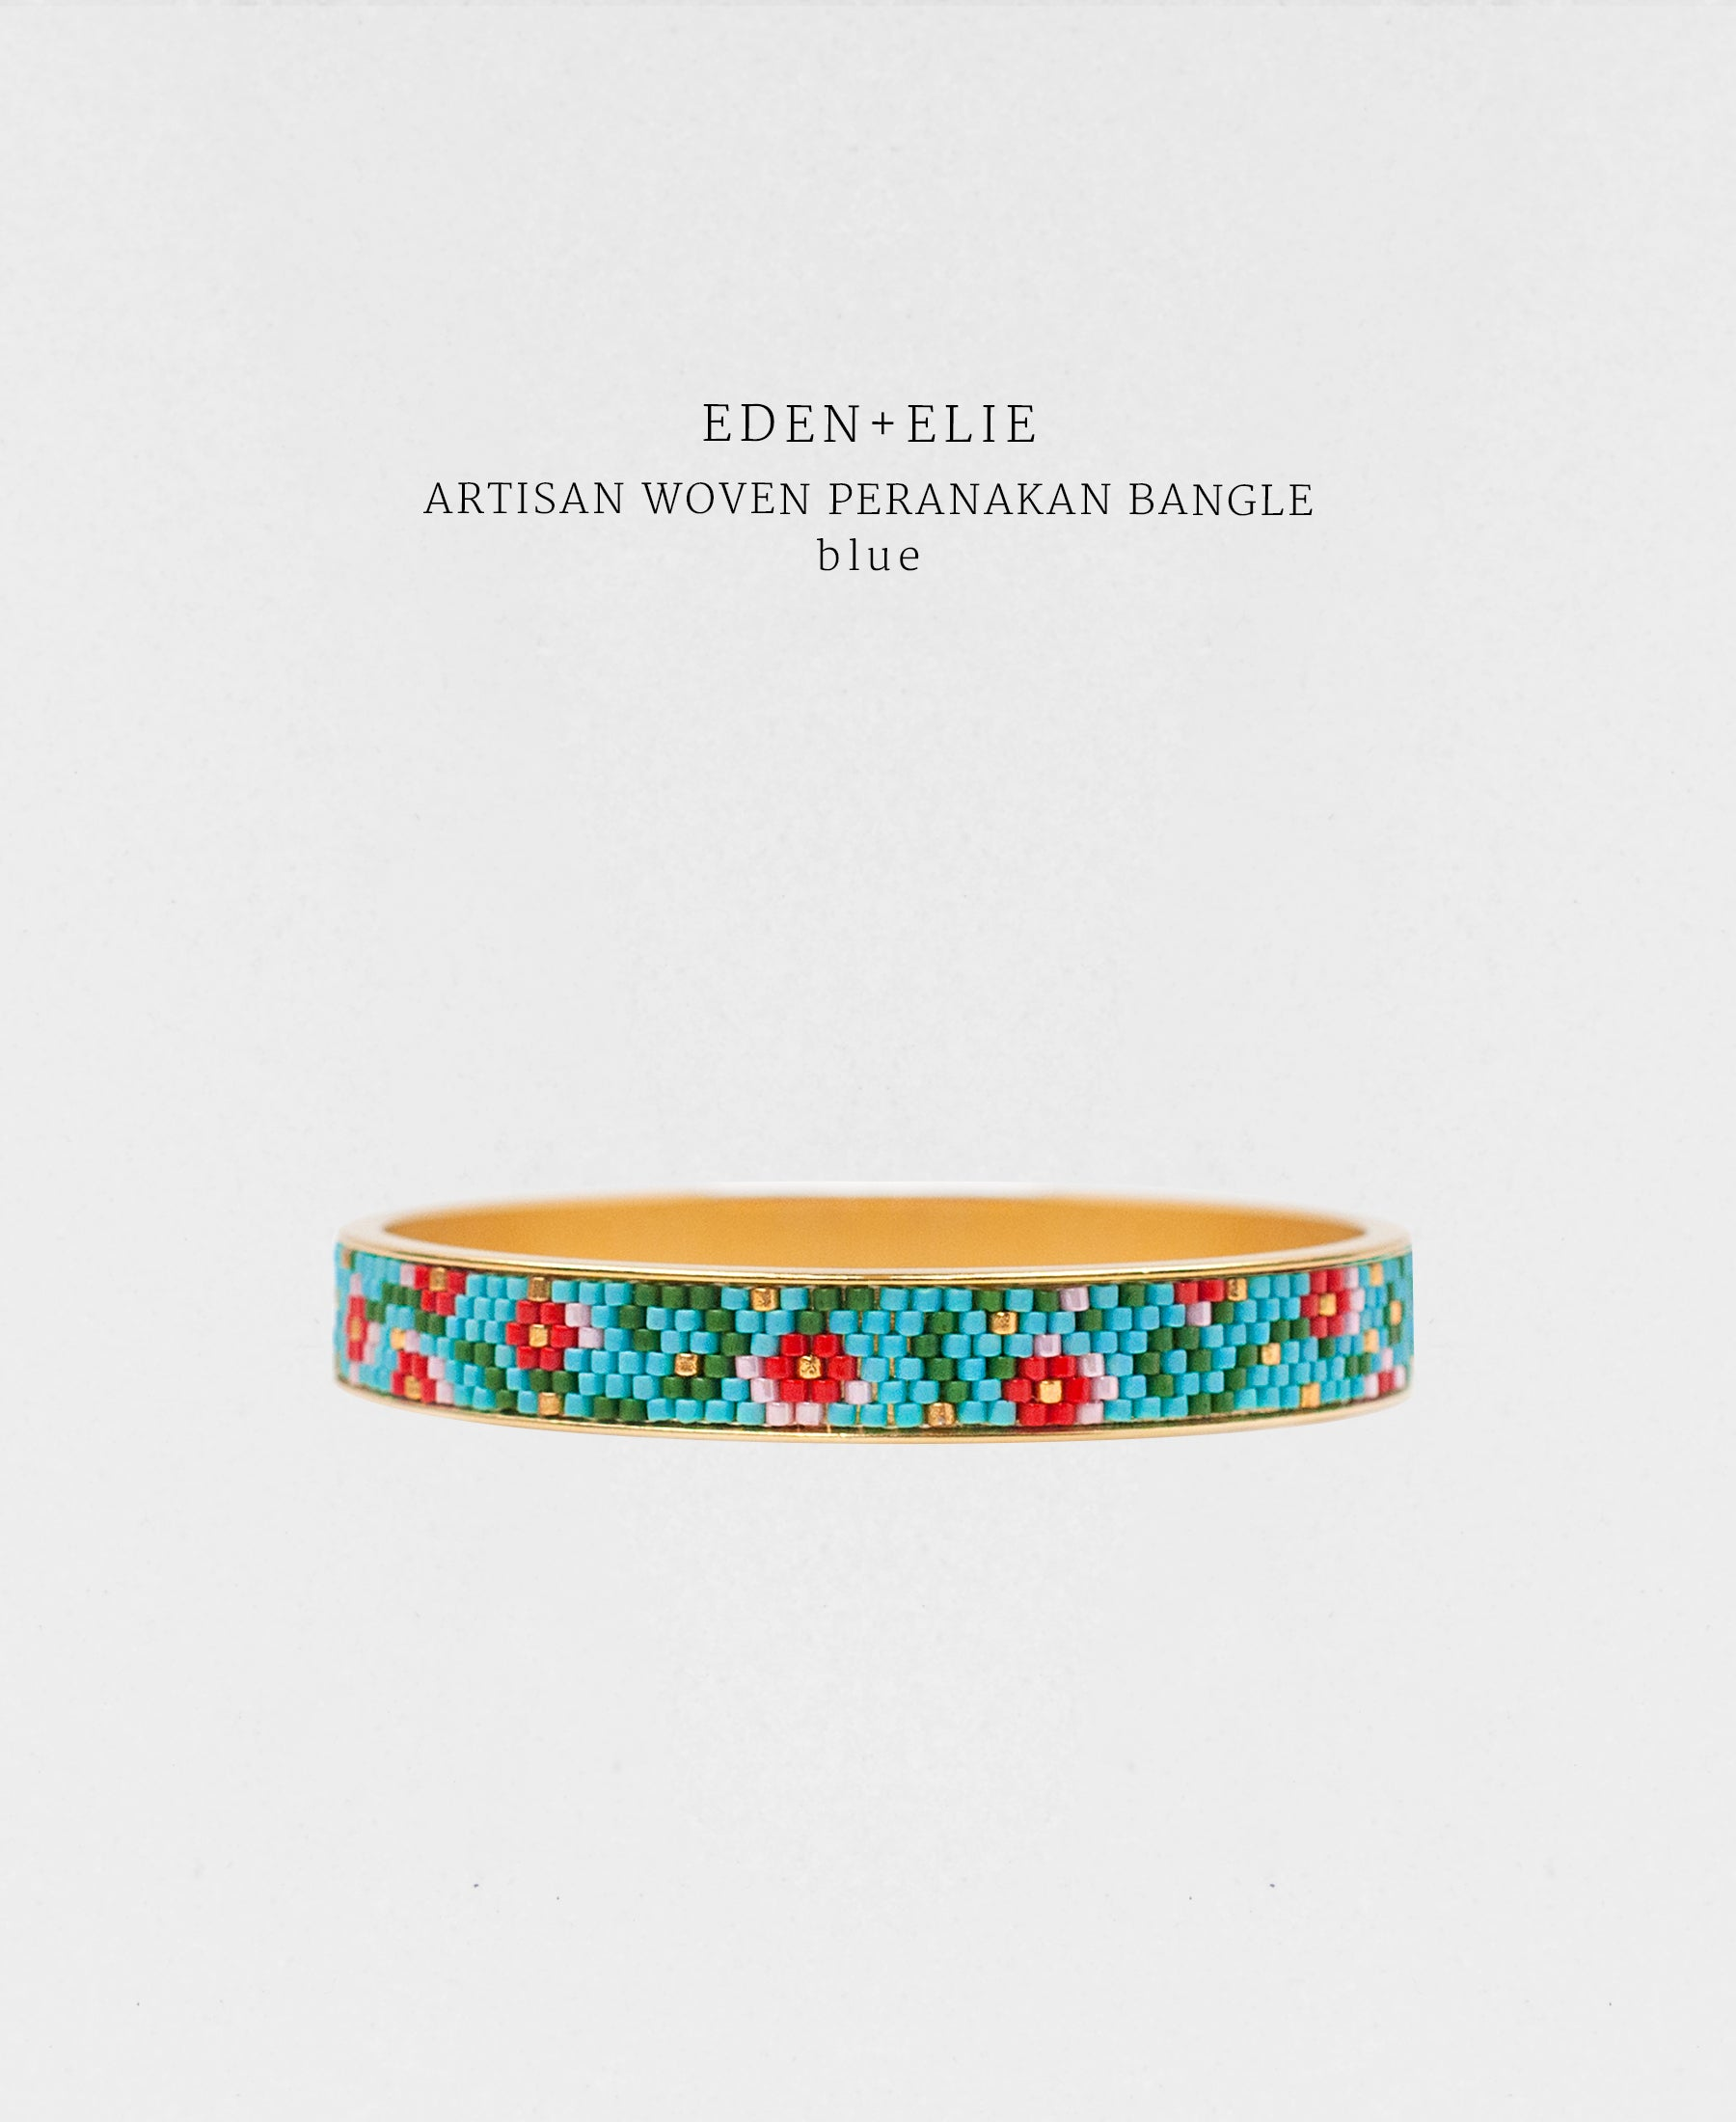 EDEN + ELIE Modern Peranakan gold narrow bangle -  blue